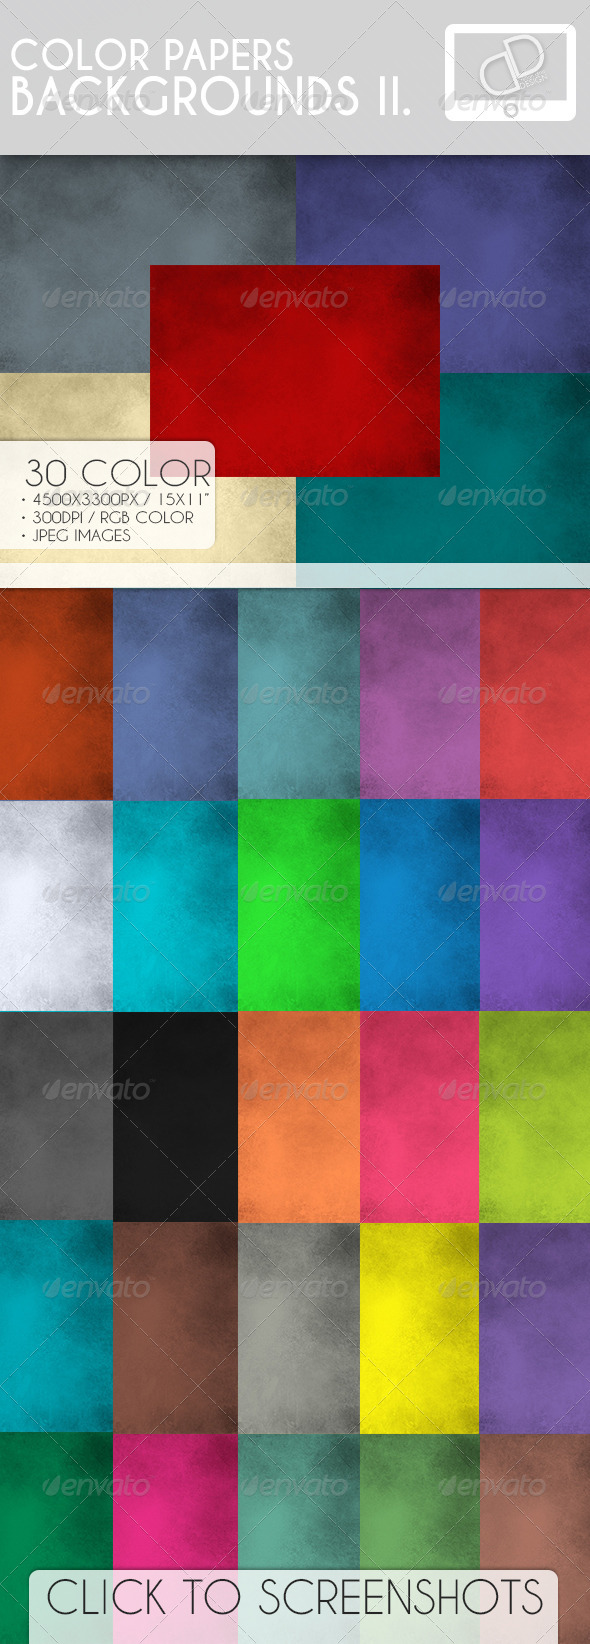 GraphicRiver Color Paper Backgrounds II 7169205